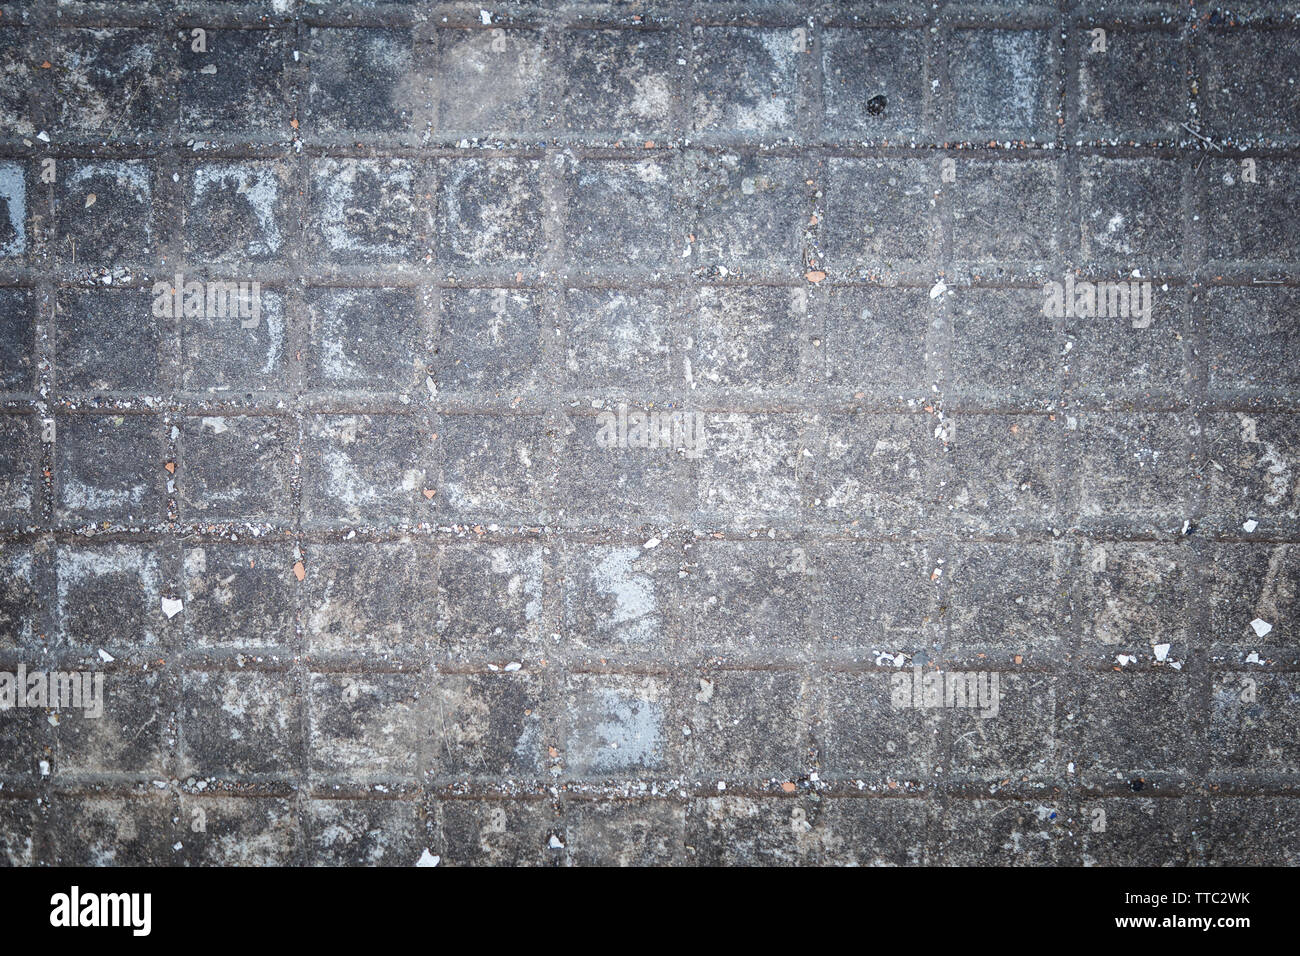 Gray and aged cement floor in an abandoned place Stock Photo